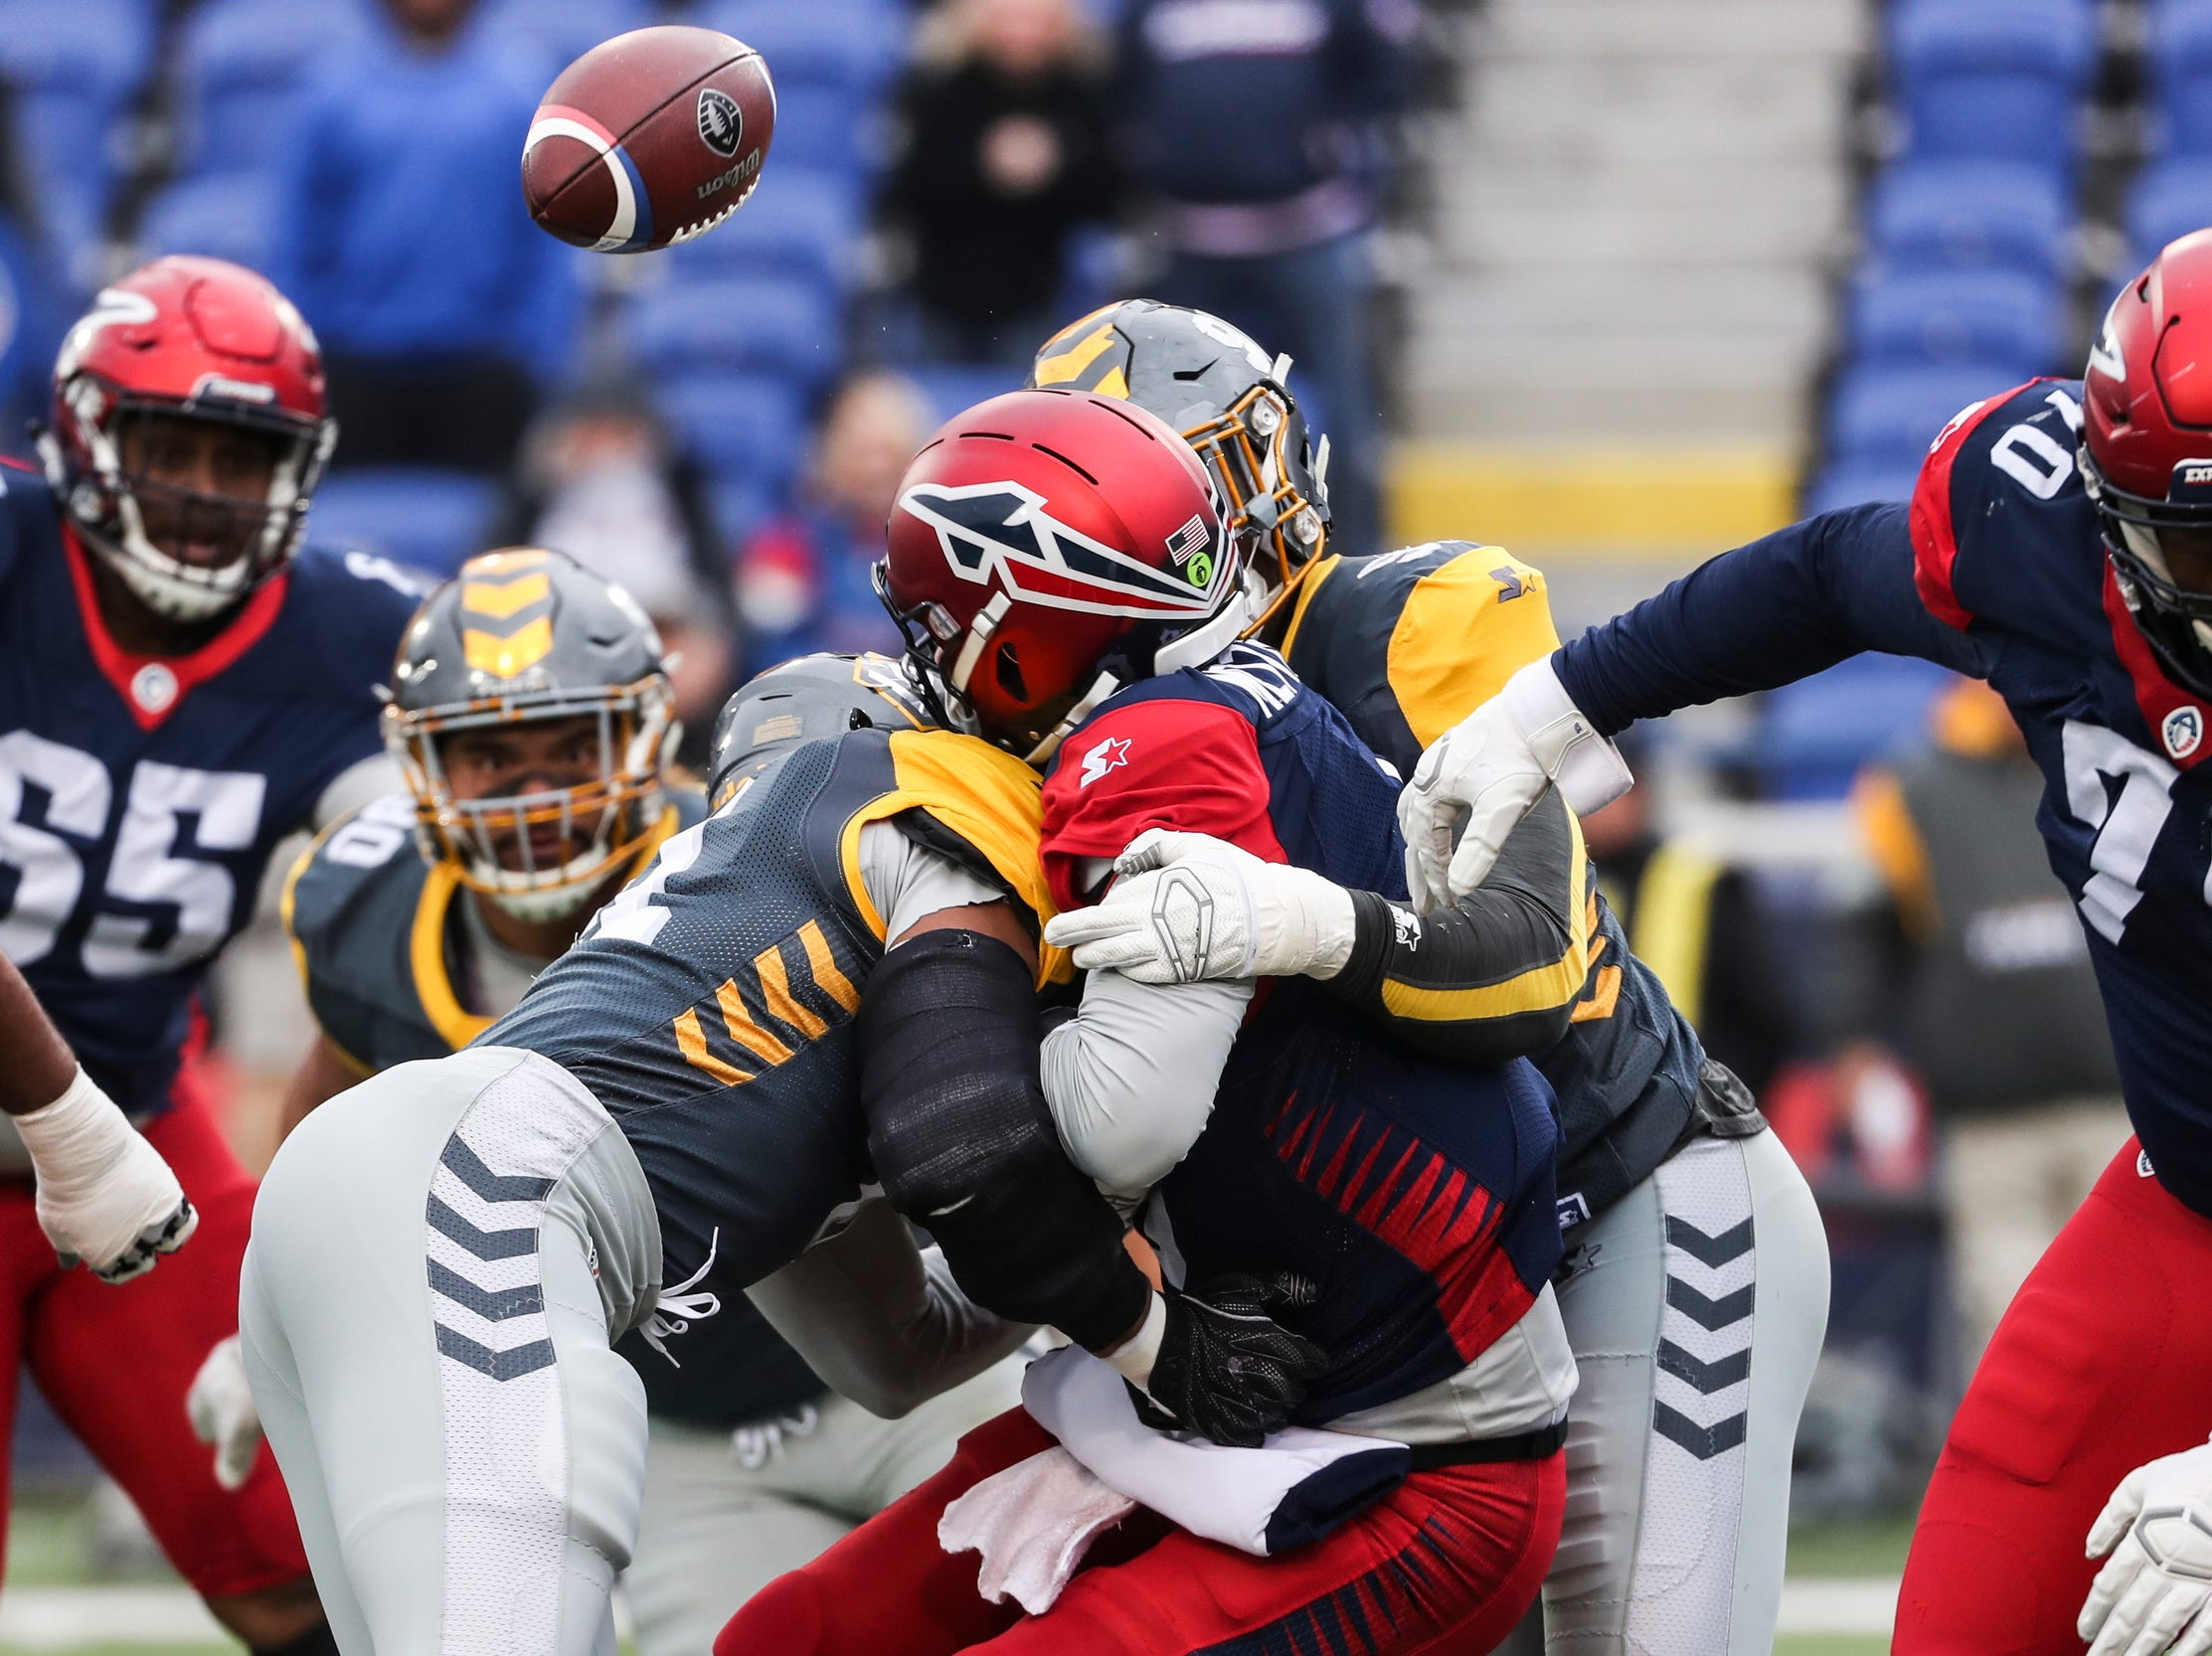 March 02, 2019 - Memphis Express' quarterback Zach Mettenberger loses the ball as he is sacked during Saturday's game against the San Diego Fleet.